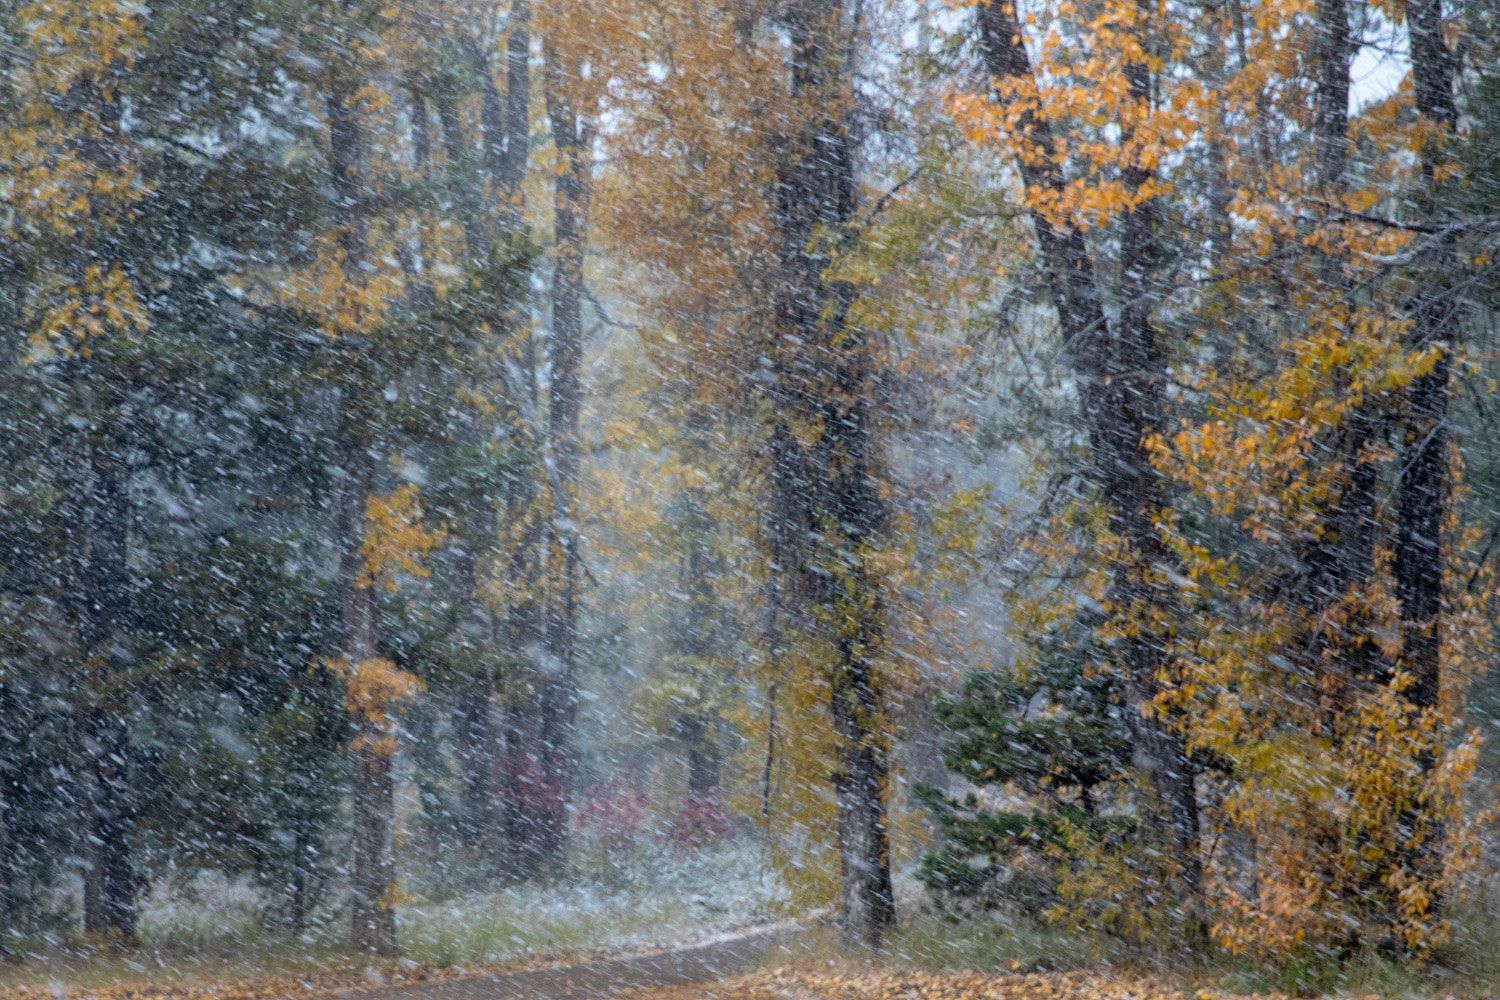 A snow squall blows through the cottonwoods near Oxbow Bend.